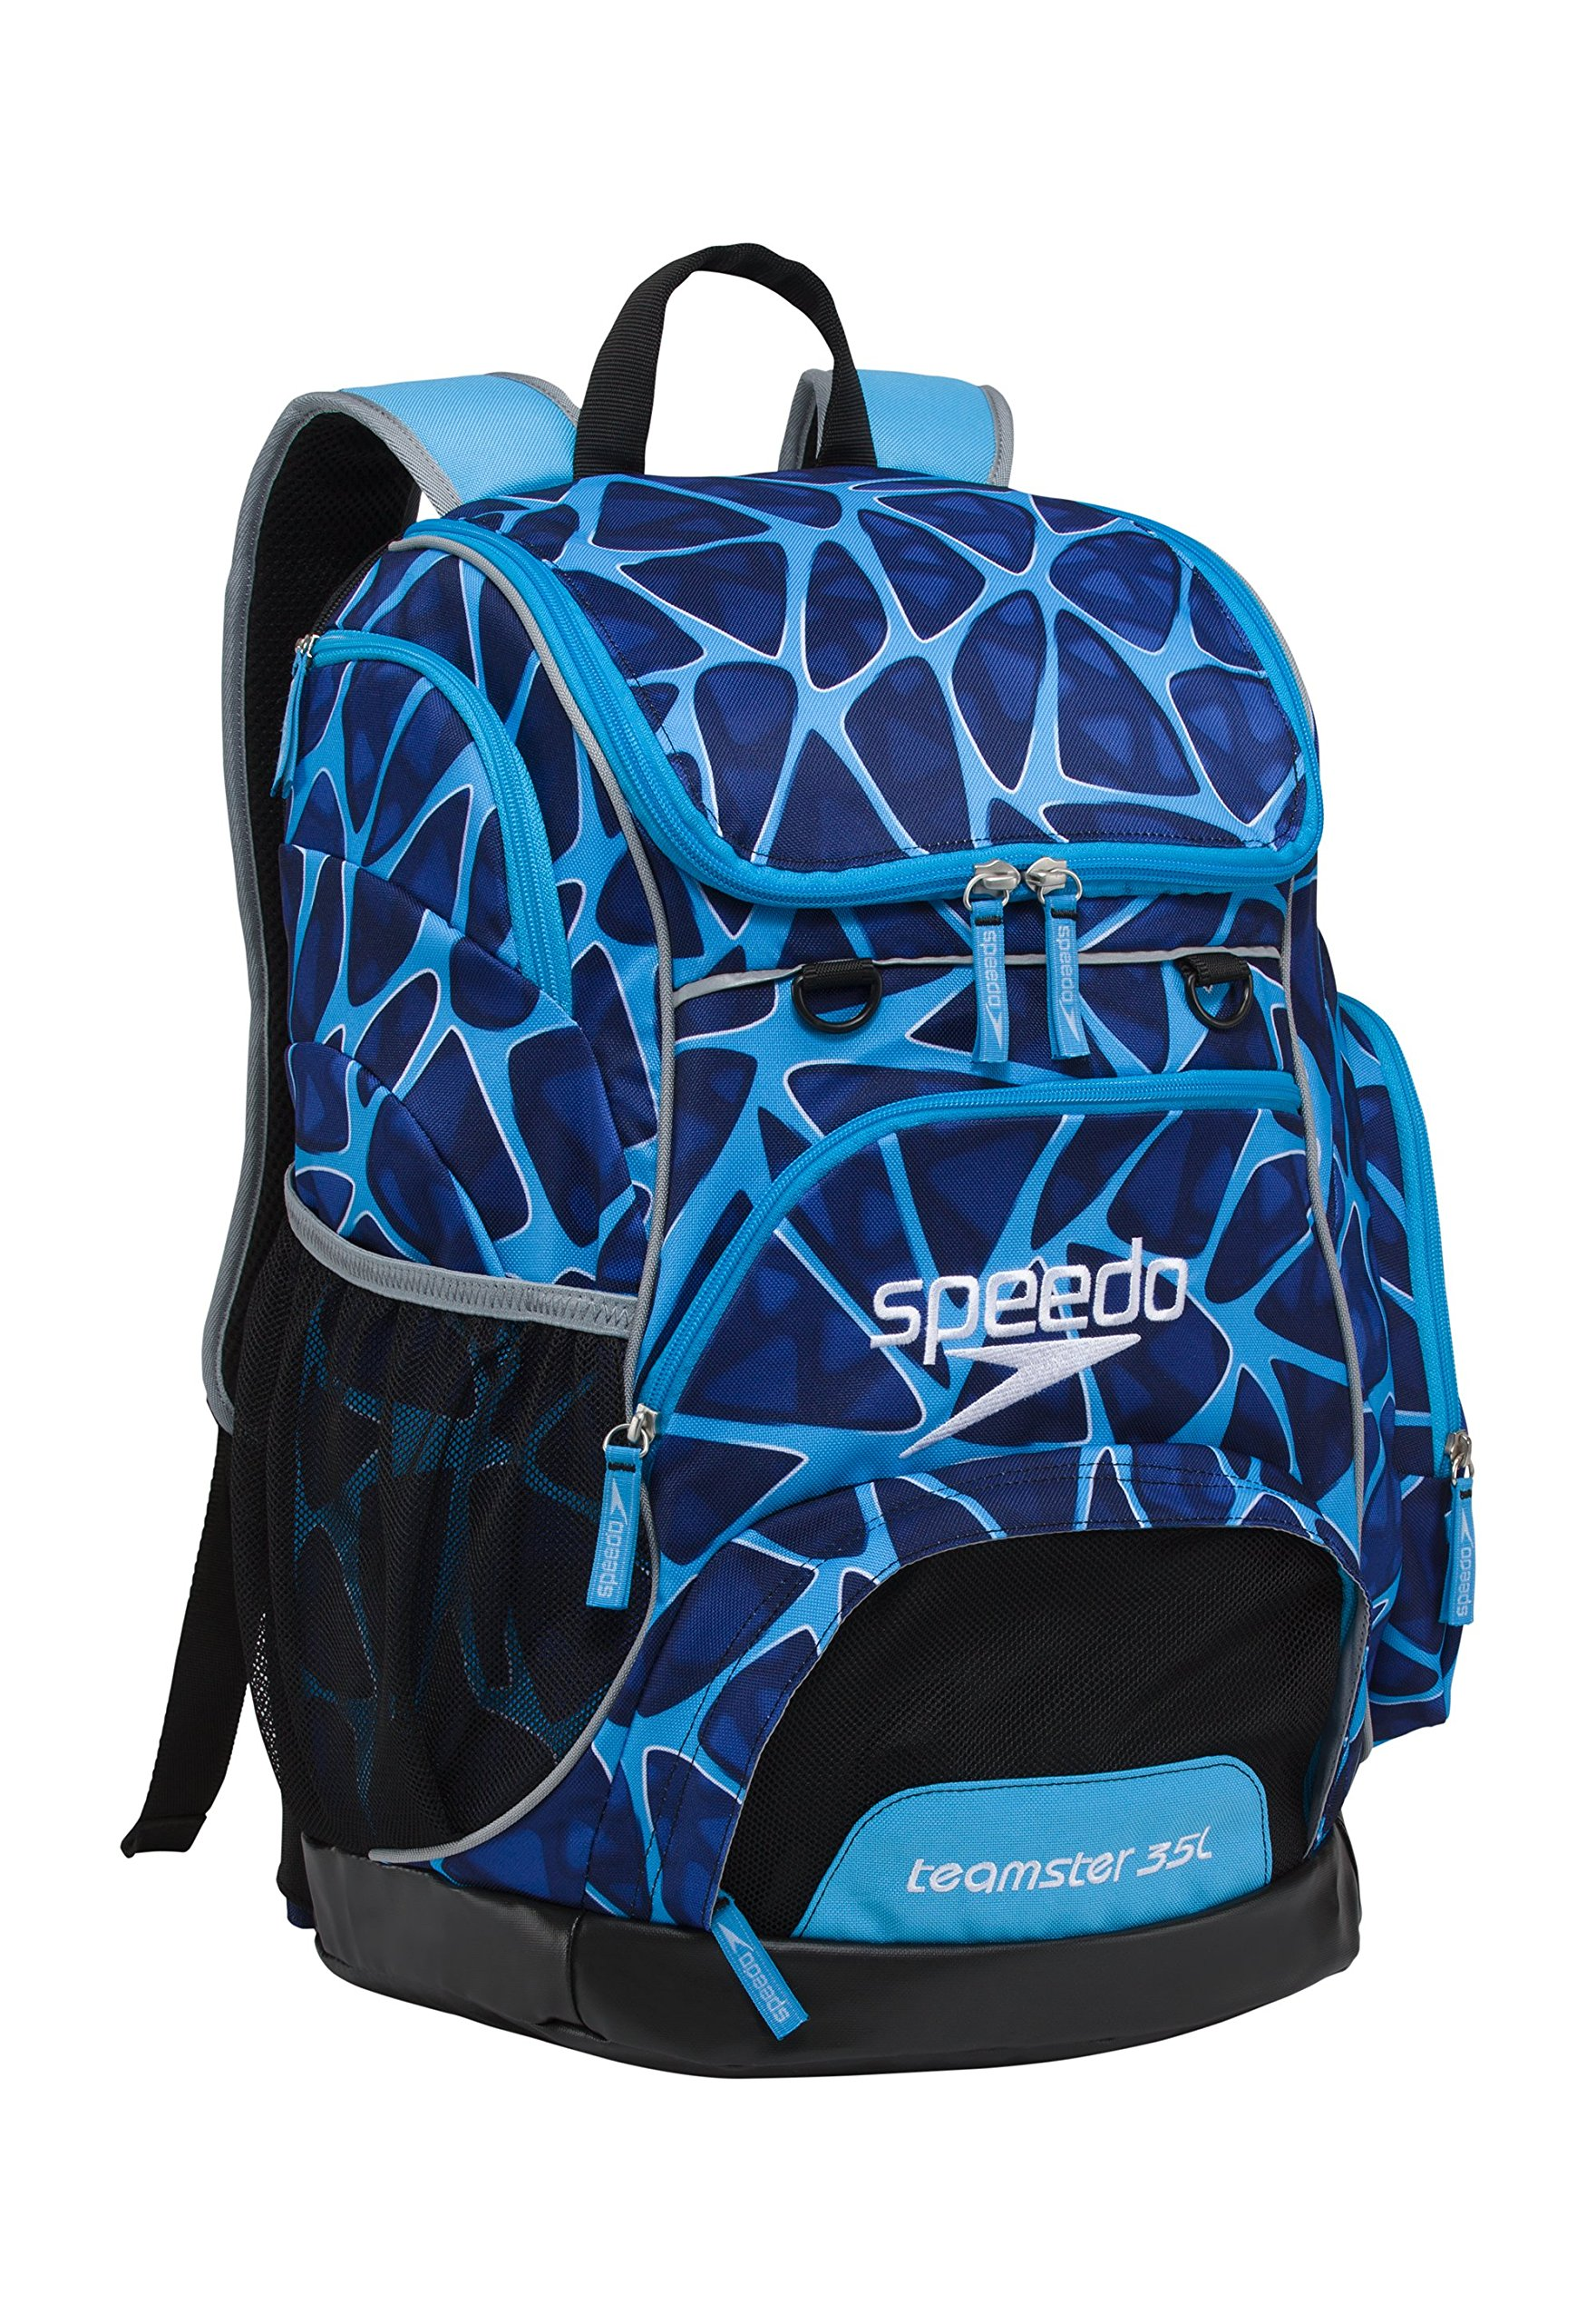 Speedo Printed Teamster 35L Backpack, Charged Blue, 1SZ